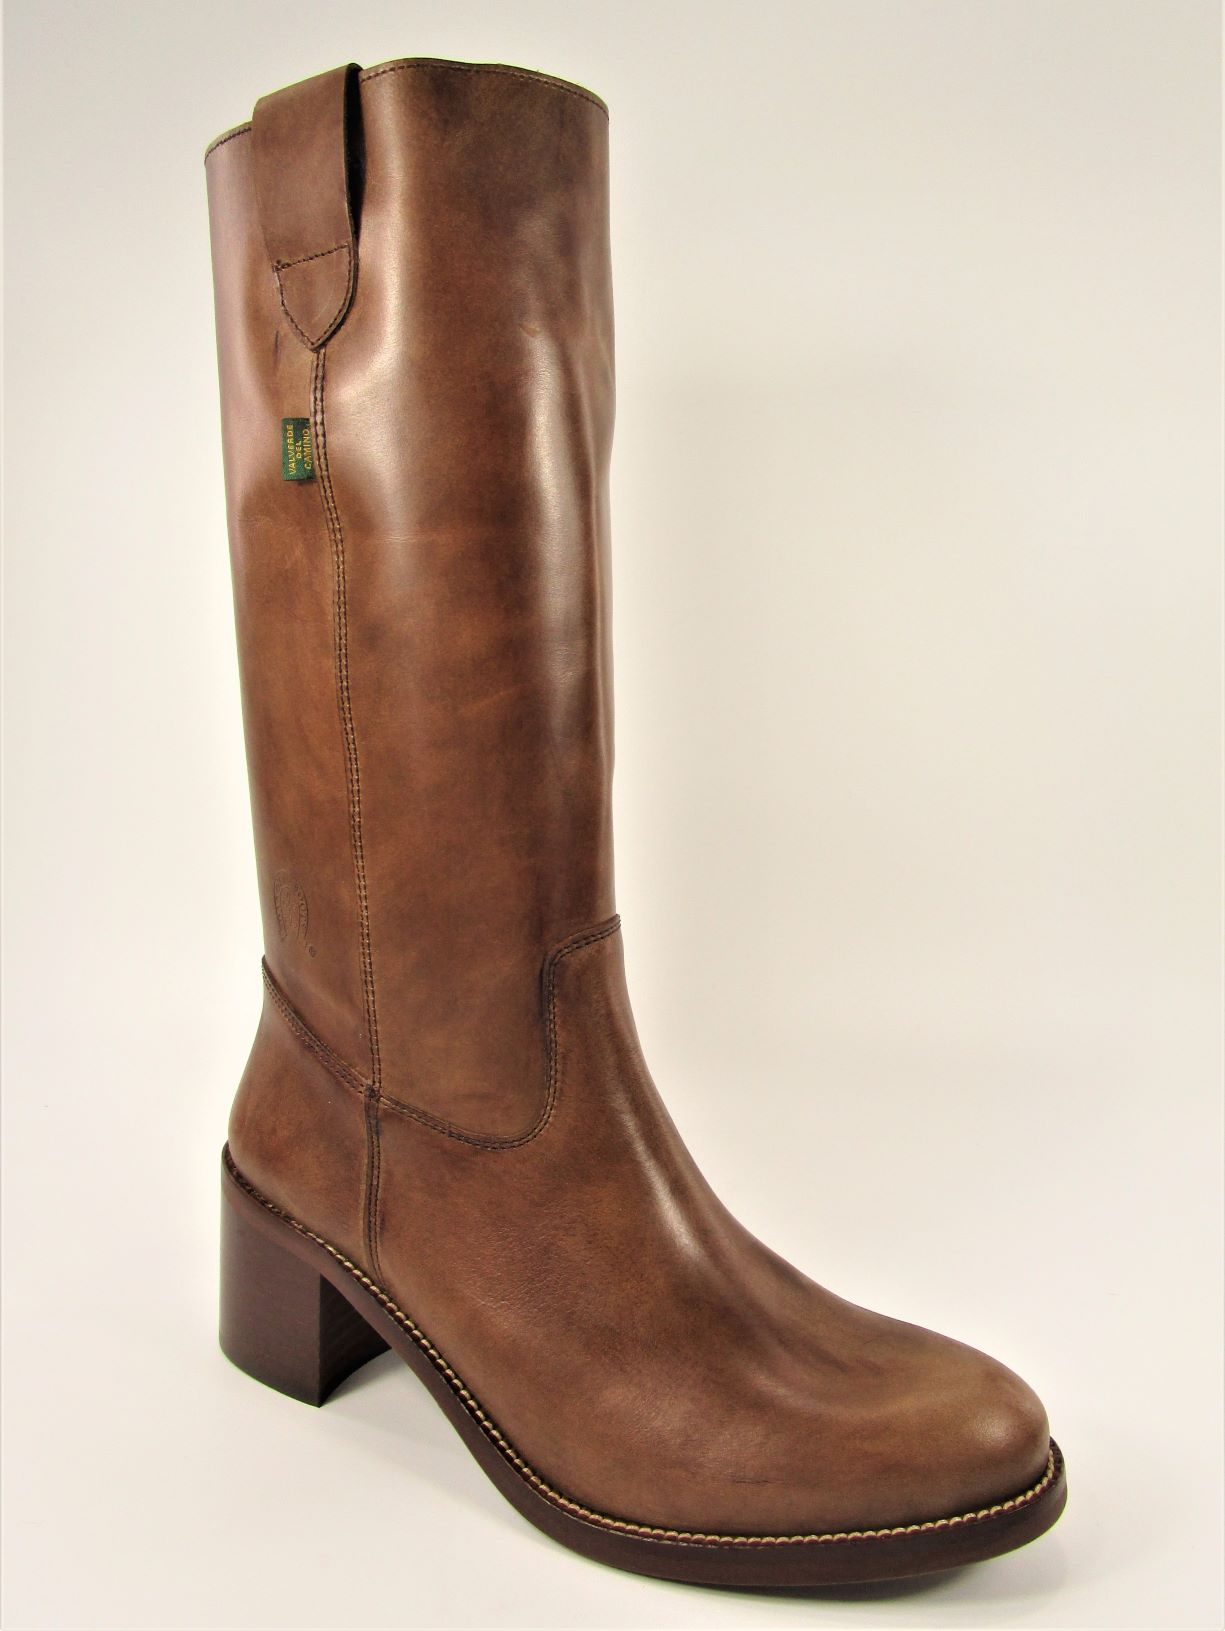 BOTA CAMPERA  TEXAS TAUPE TACON MEDIO